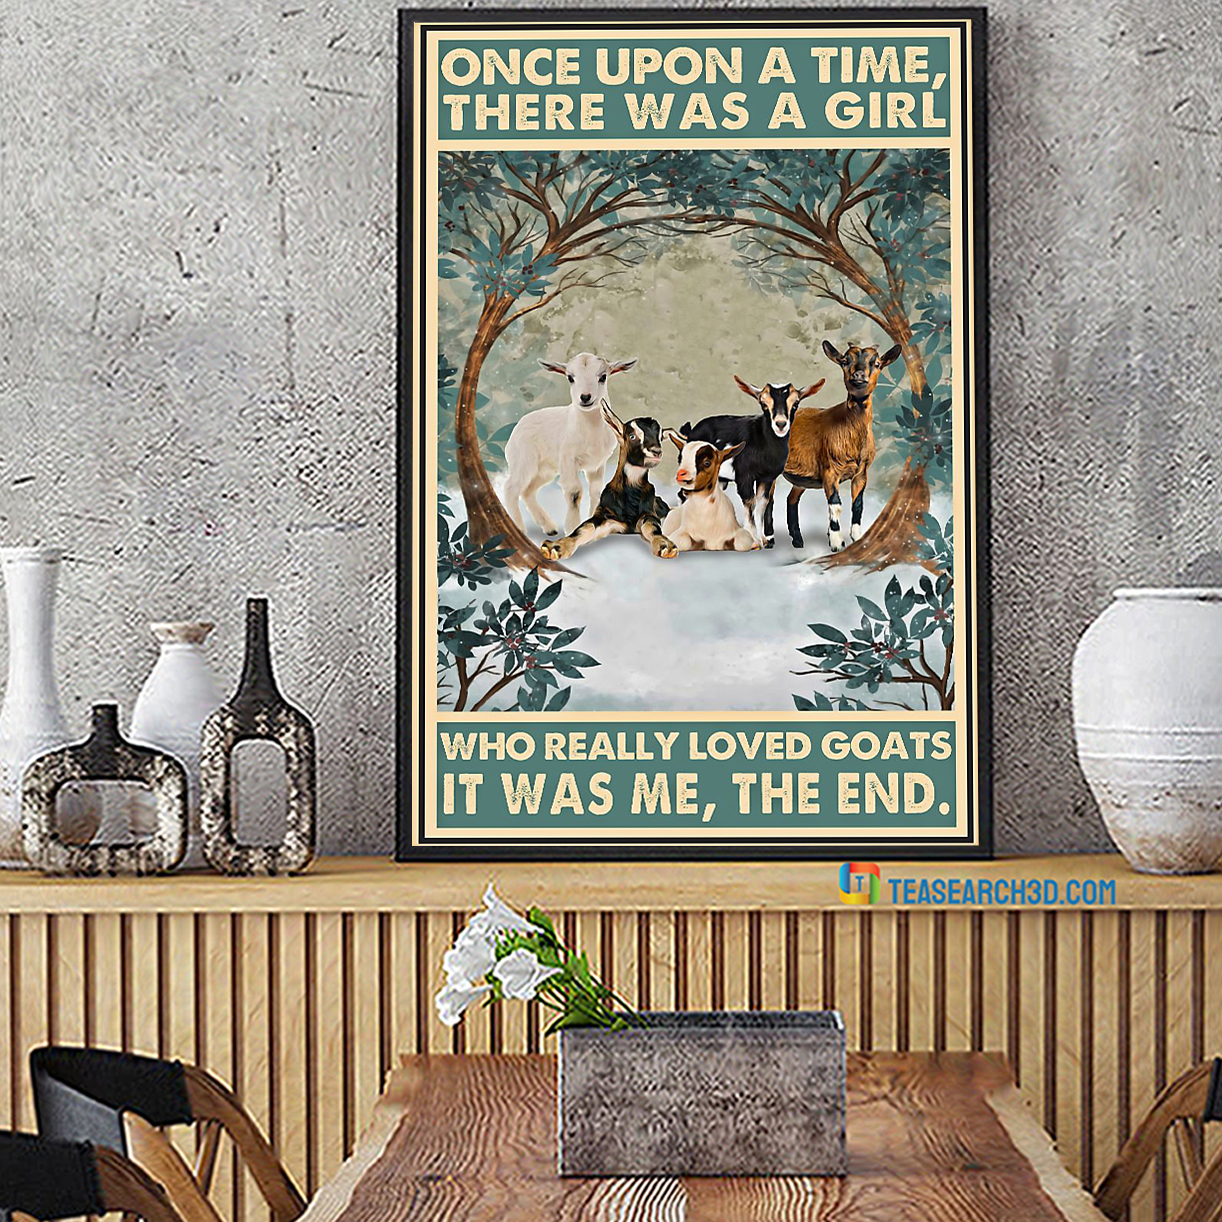 There was a girl who really loved goats it was me the end poster A2